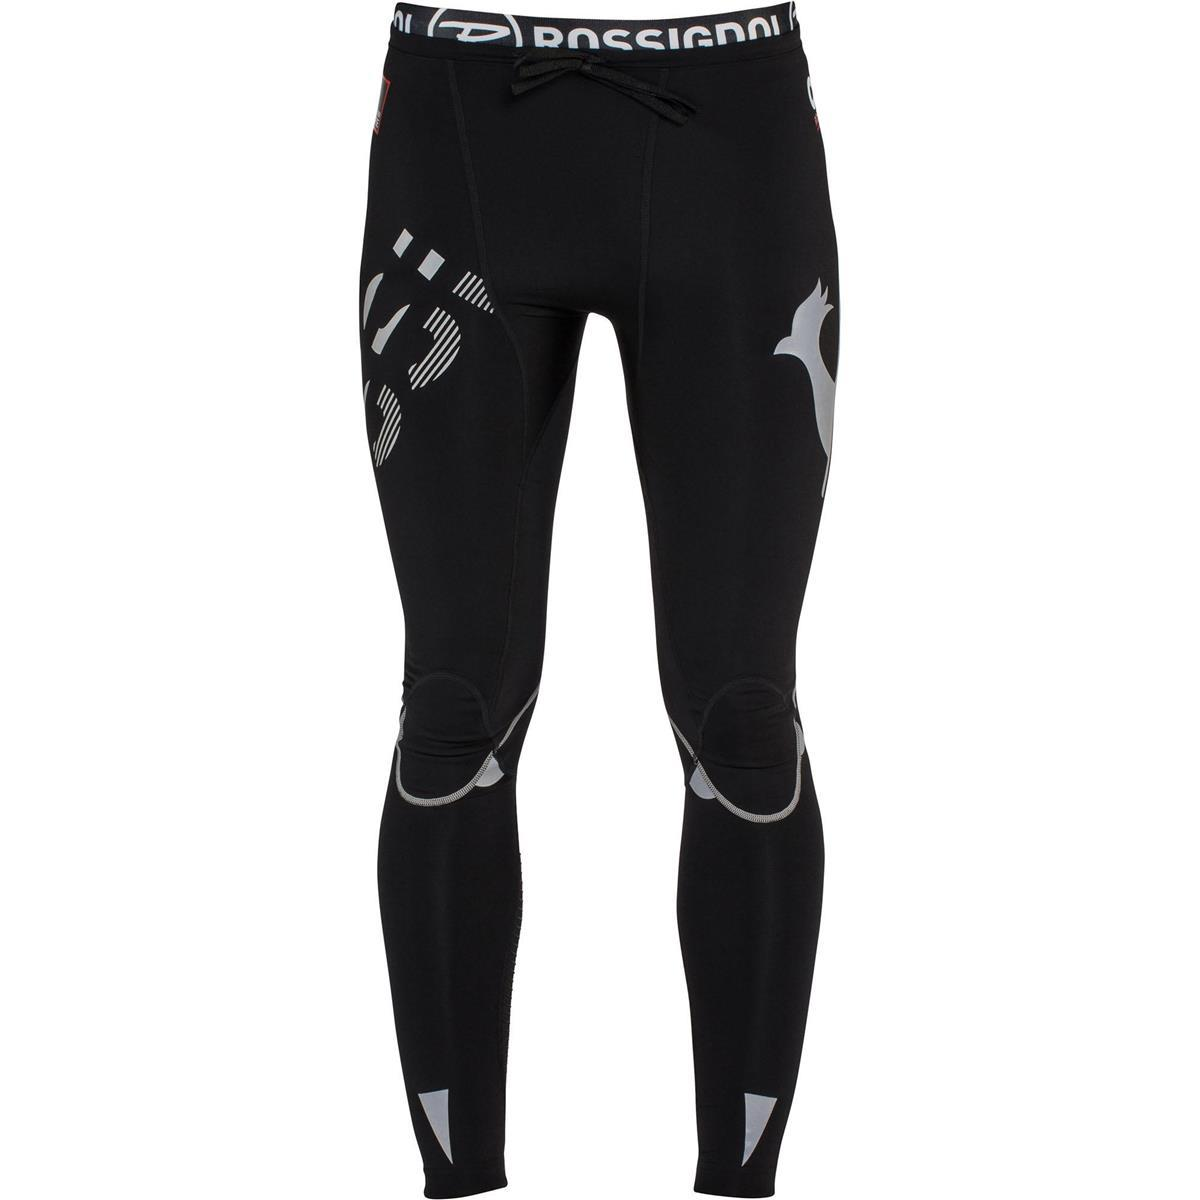 Rossignol Infini Compression Race Tights